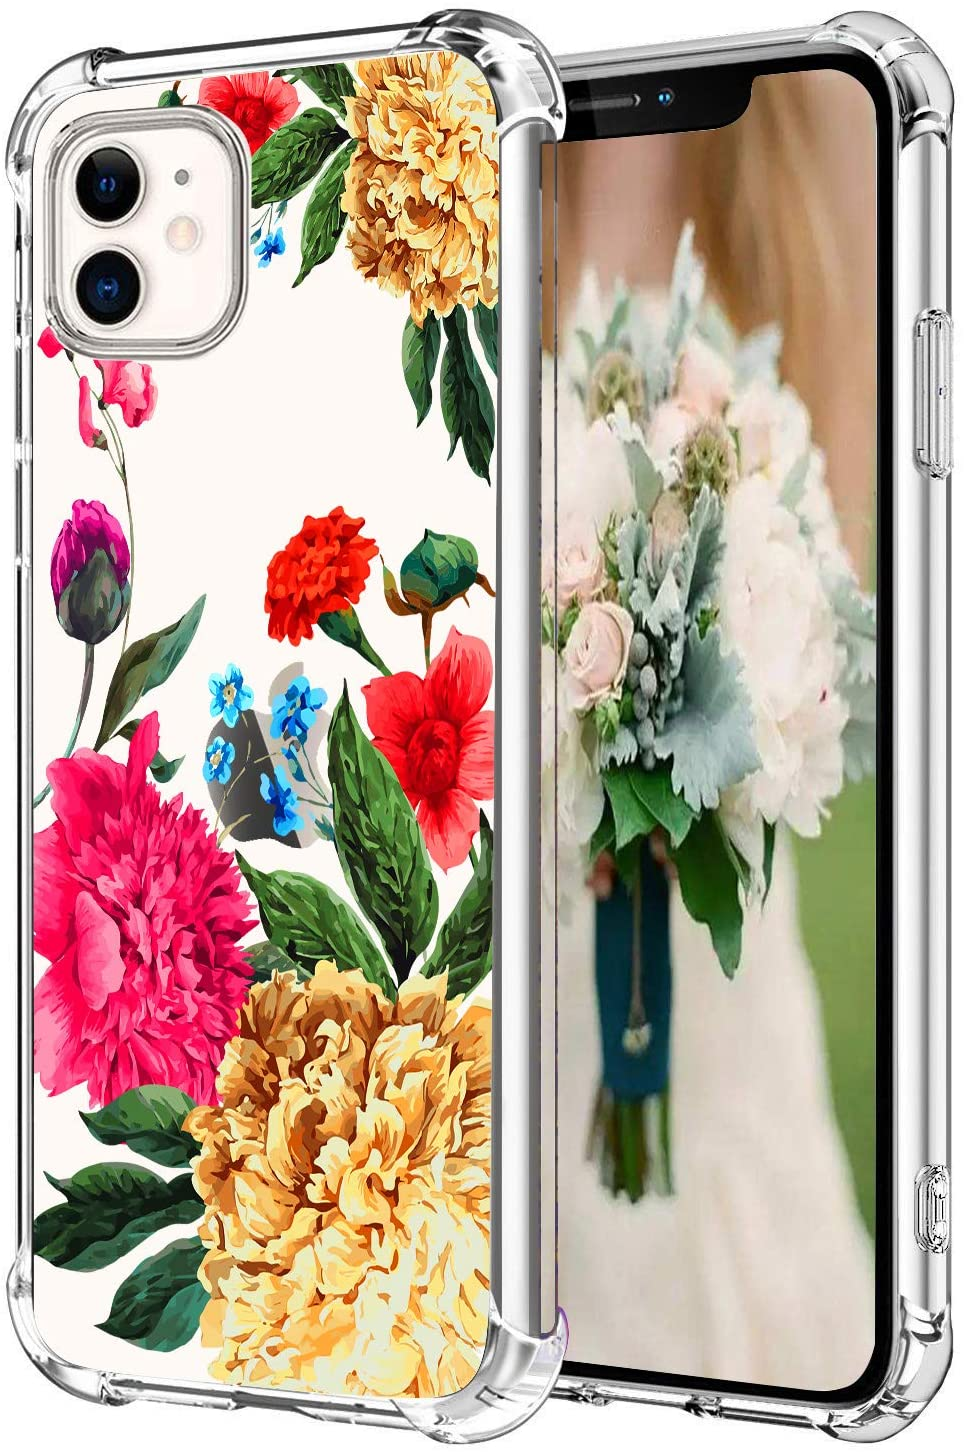 Hepix Floral Clear iPhone 11 Case Flowers iPhone 11 Cases, Slim Flexible Crystal TPU Phone Cover with 4 Protective Bumpers Anti-Scratch Shock Absorption for iPhone 11 (6.1